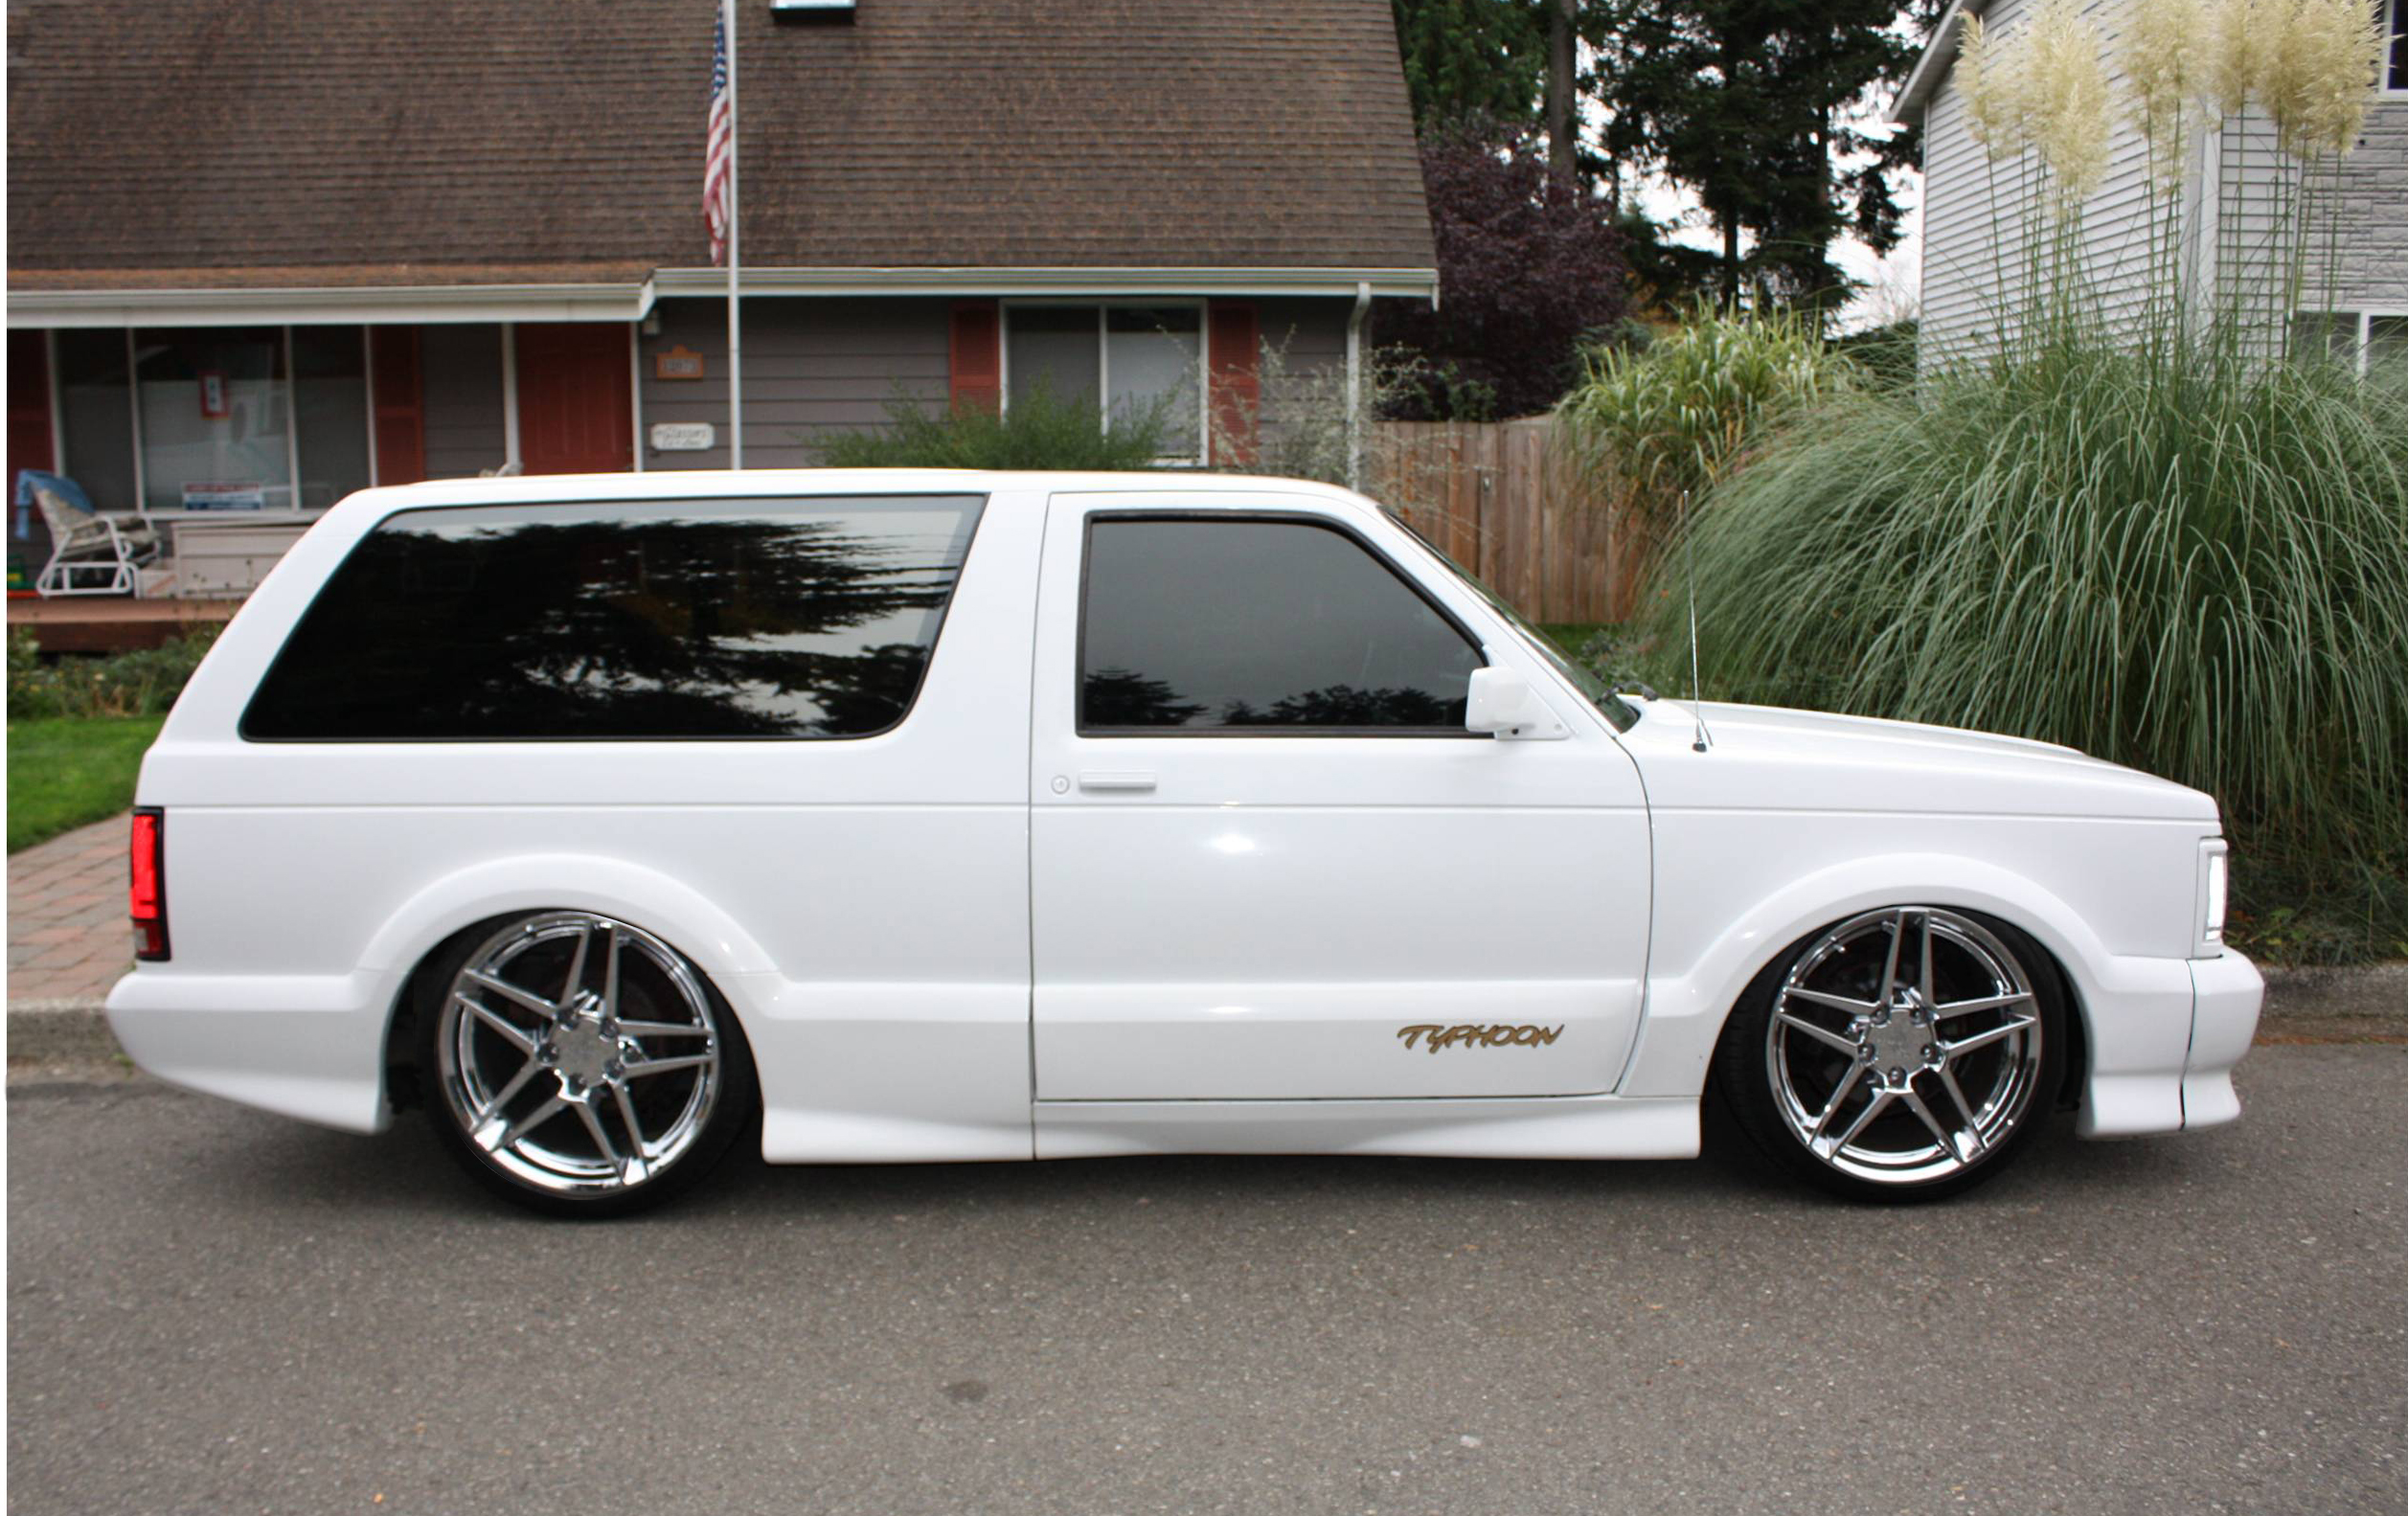 GMC Typhoon #24